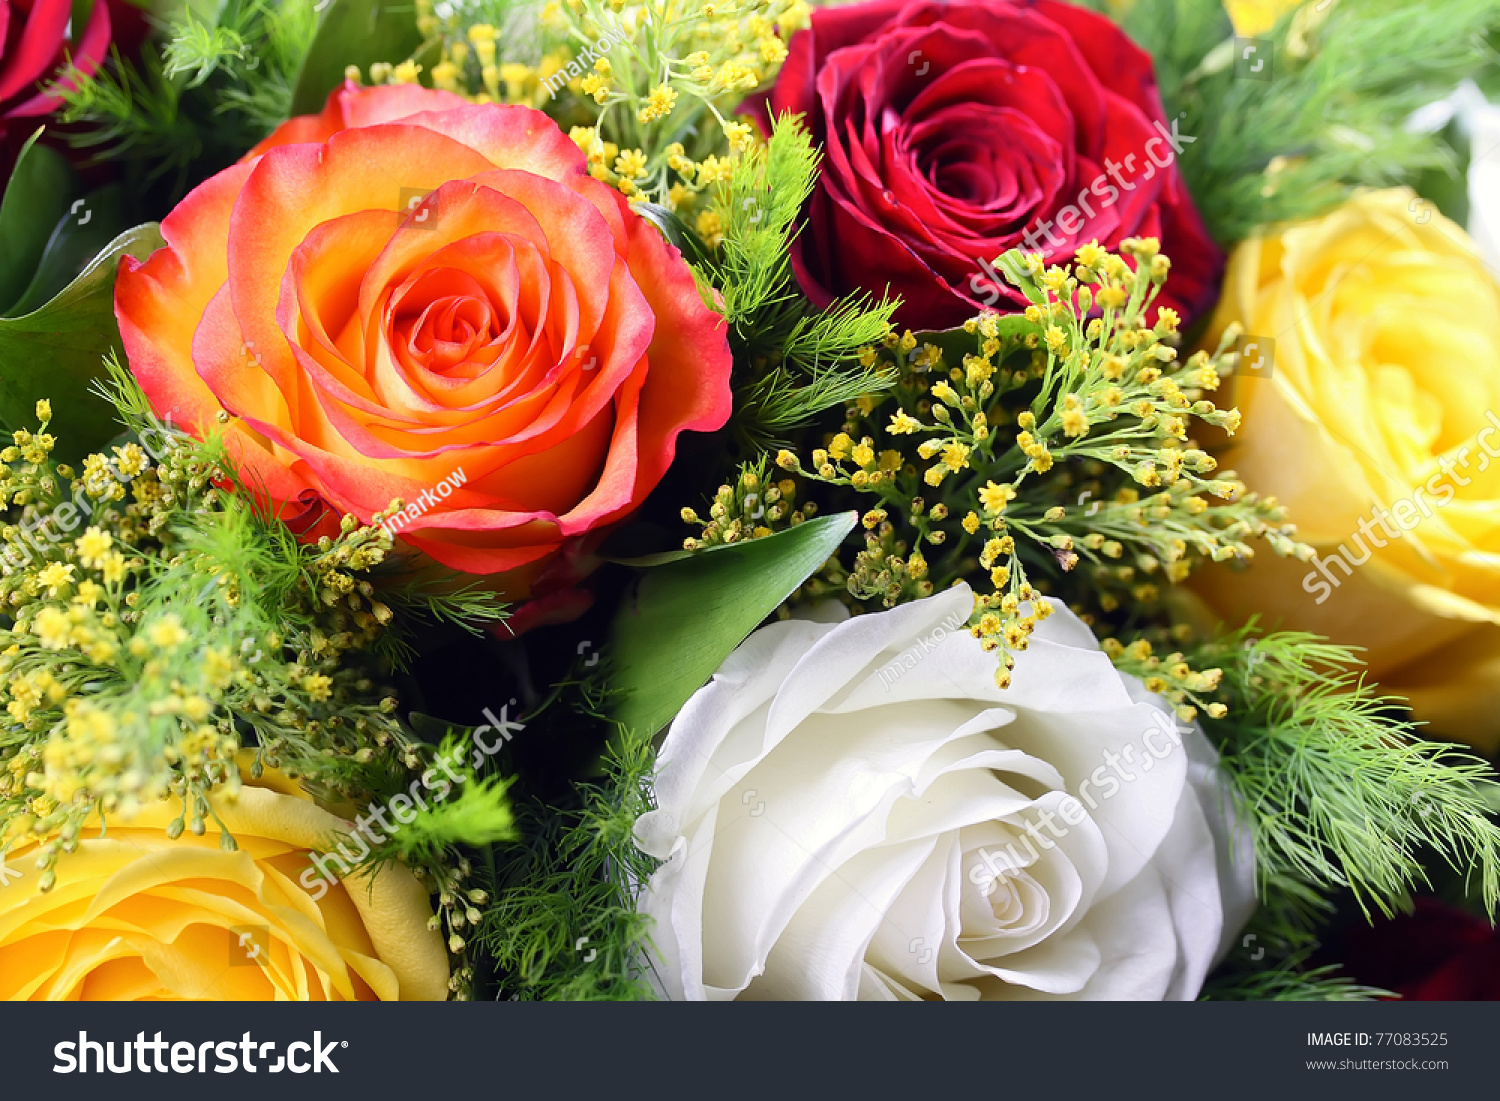 Bouquet different color roses stock photo 77083525 for Different color roses bouquet